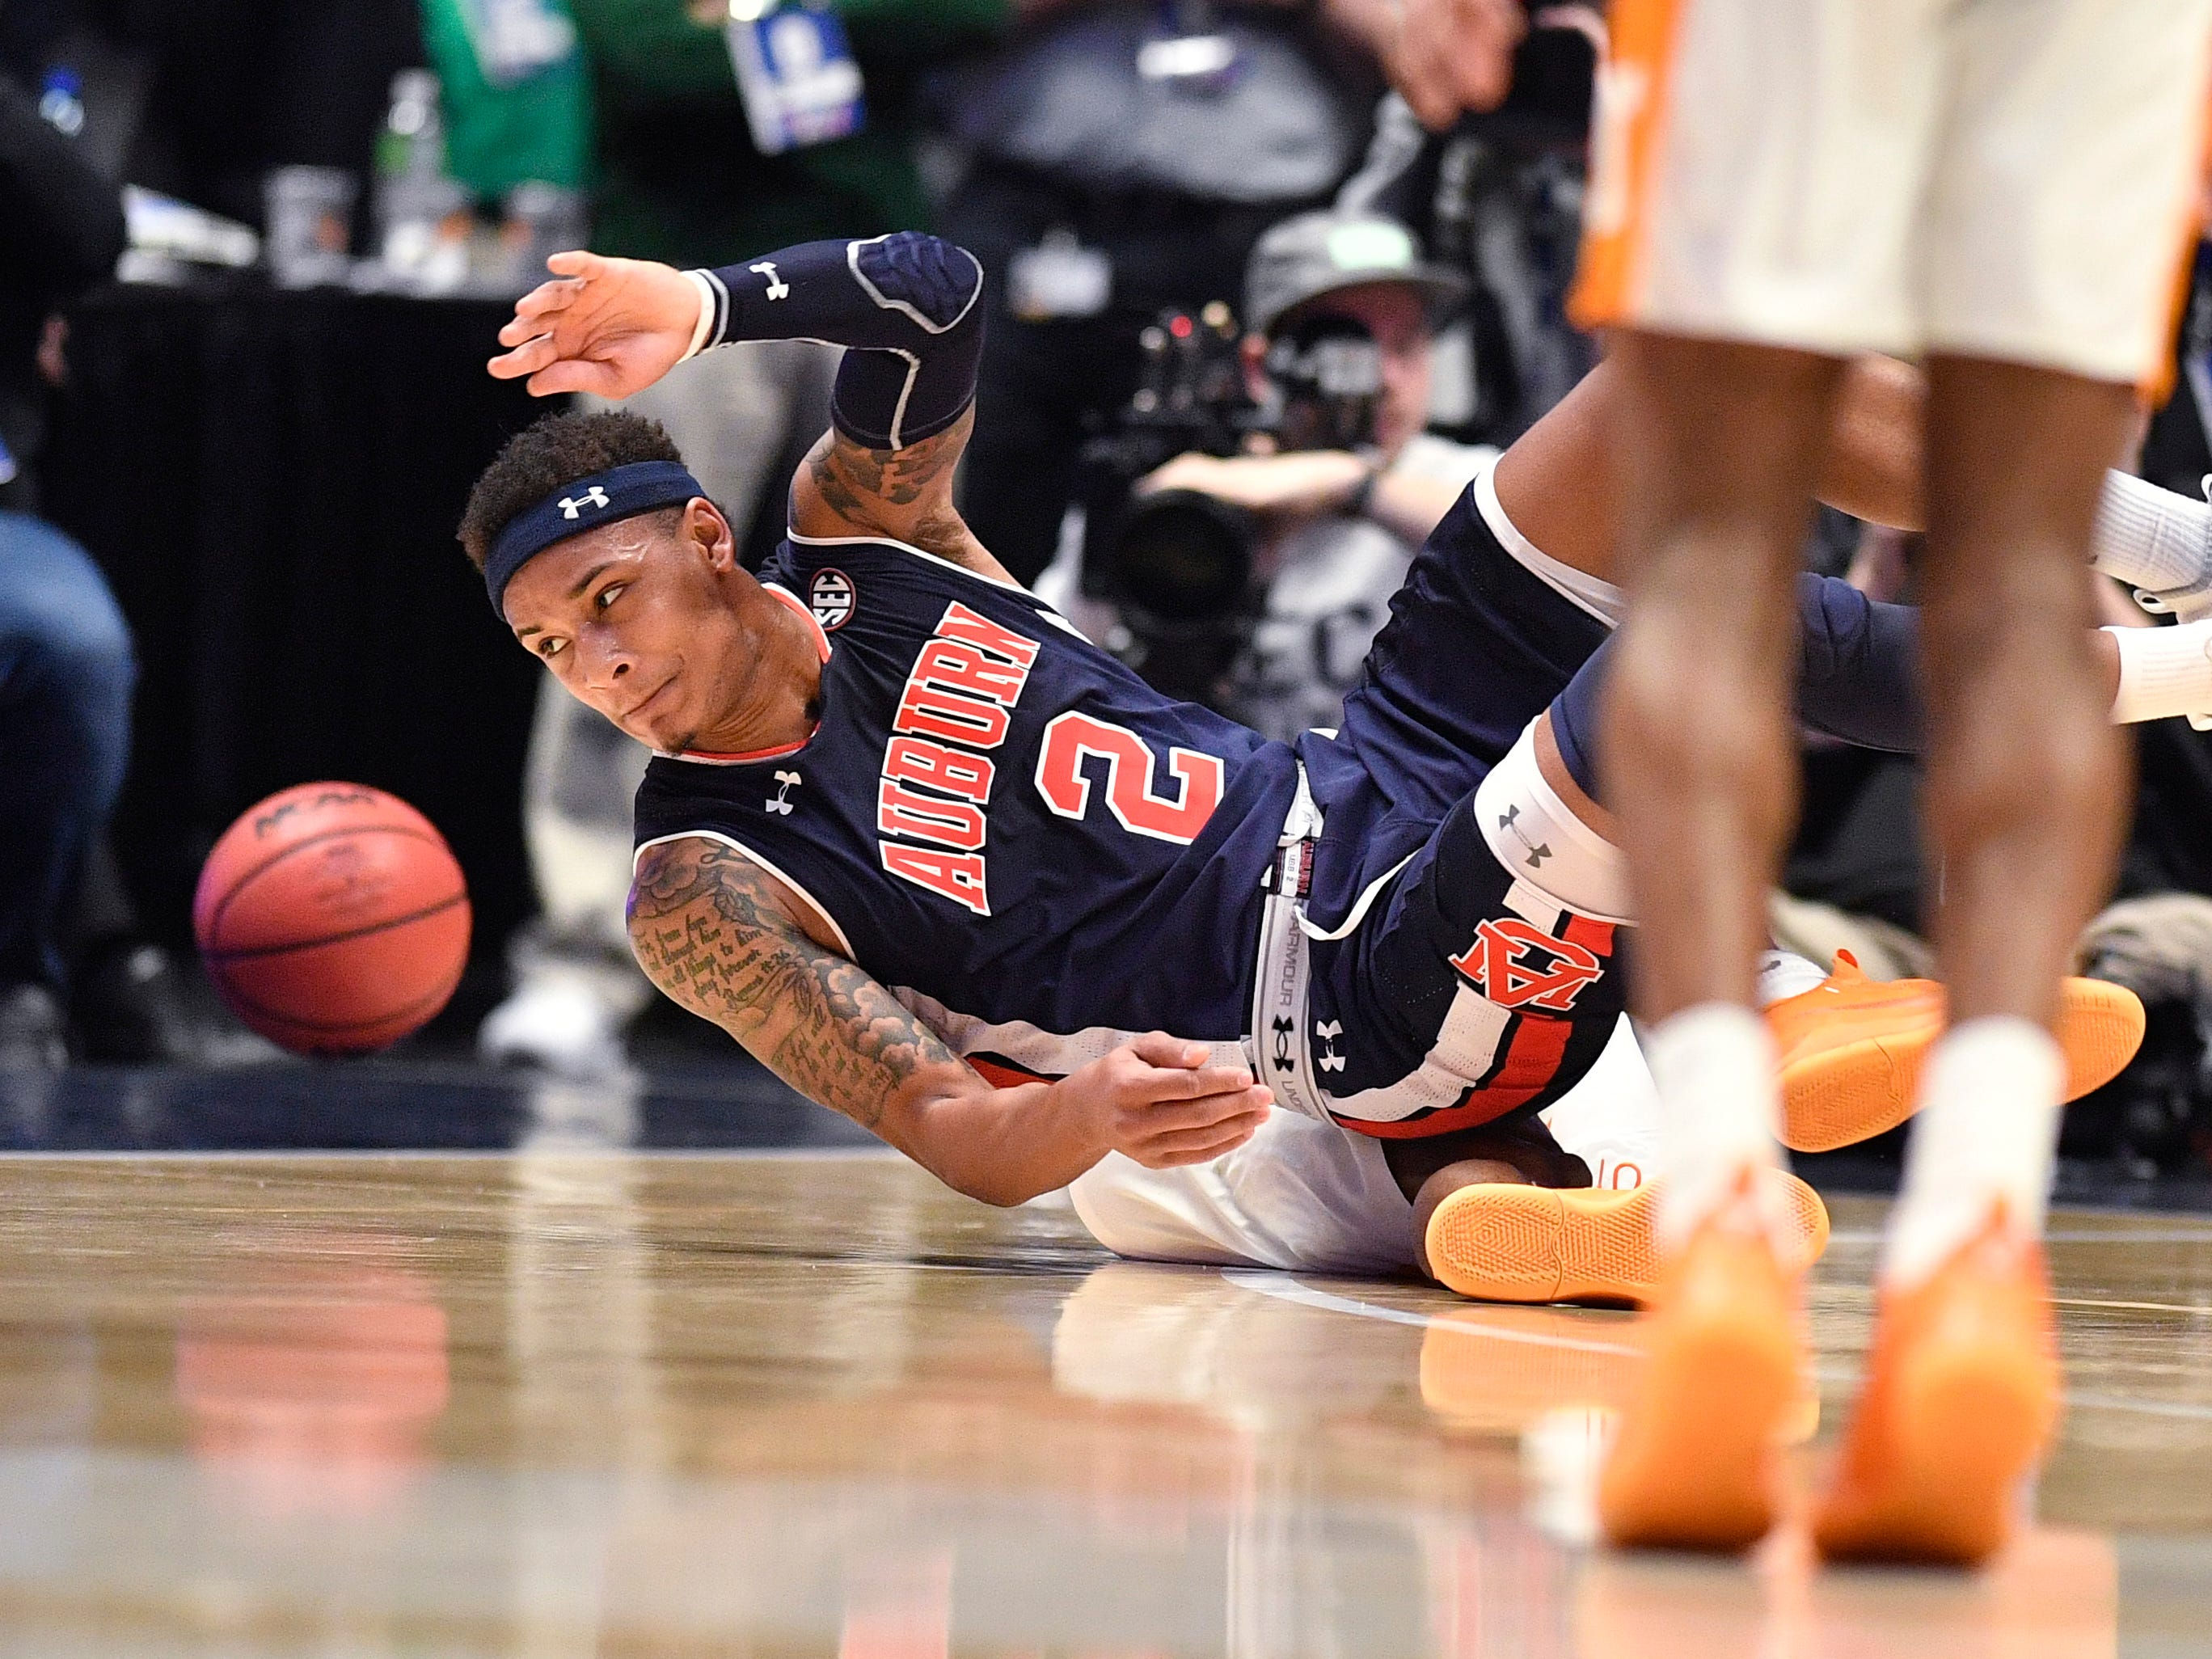 Auburn guard Bryce Brown (2) reaches for a loose ball during the first half of the SEC Men's Basketball Tournament championship game against Tennessee at Bridgestone Arena in Nashville, Tenn., Sunday, March 17, 2019.